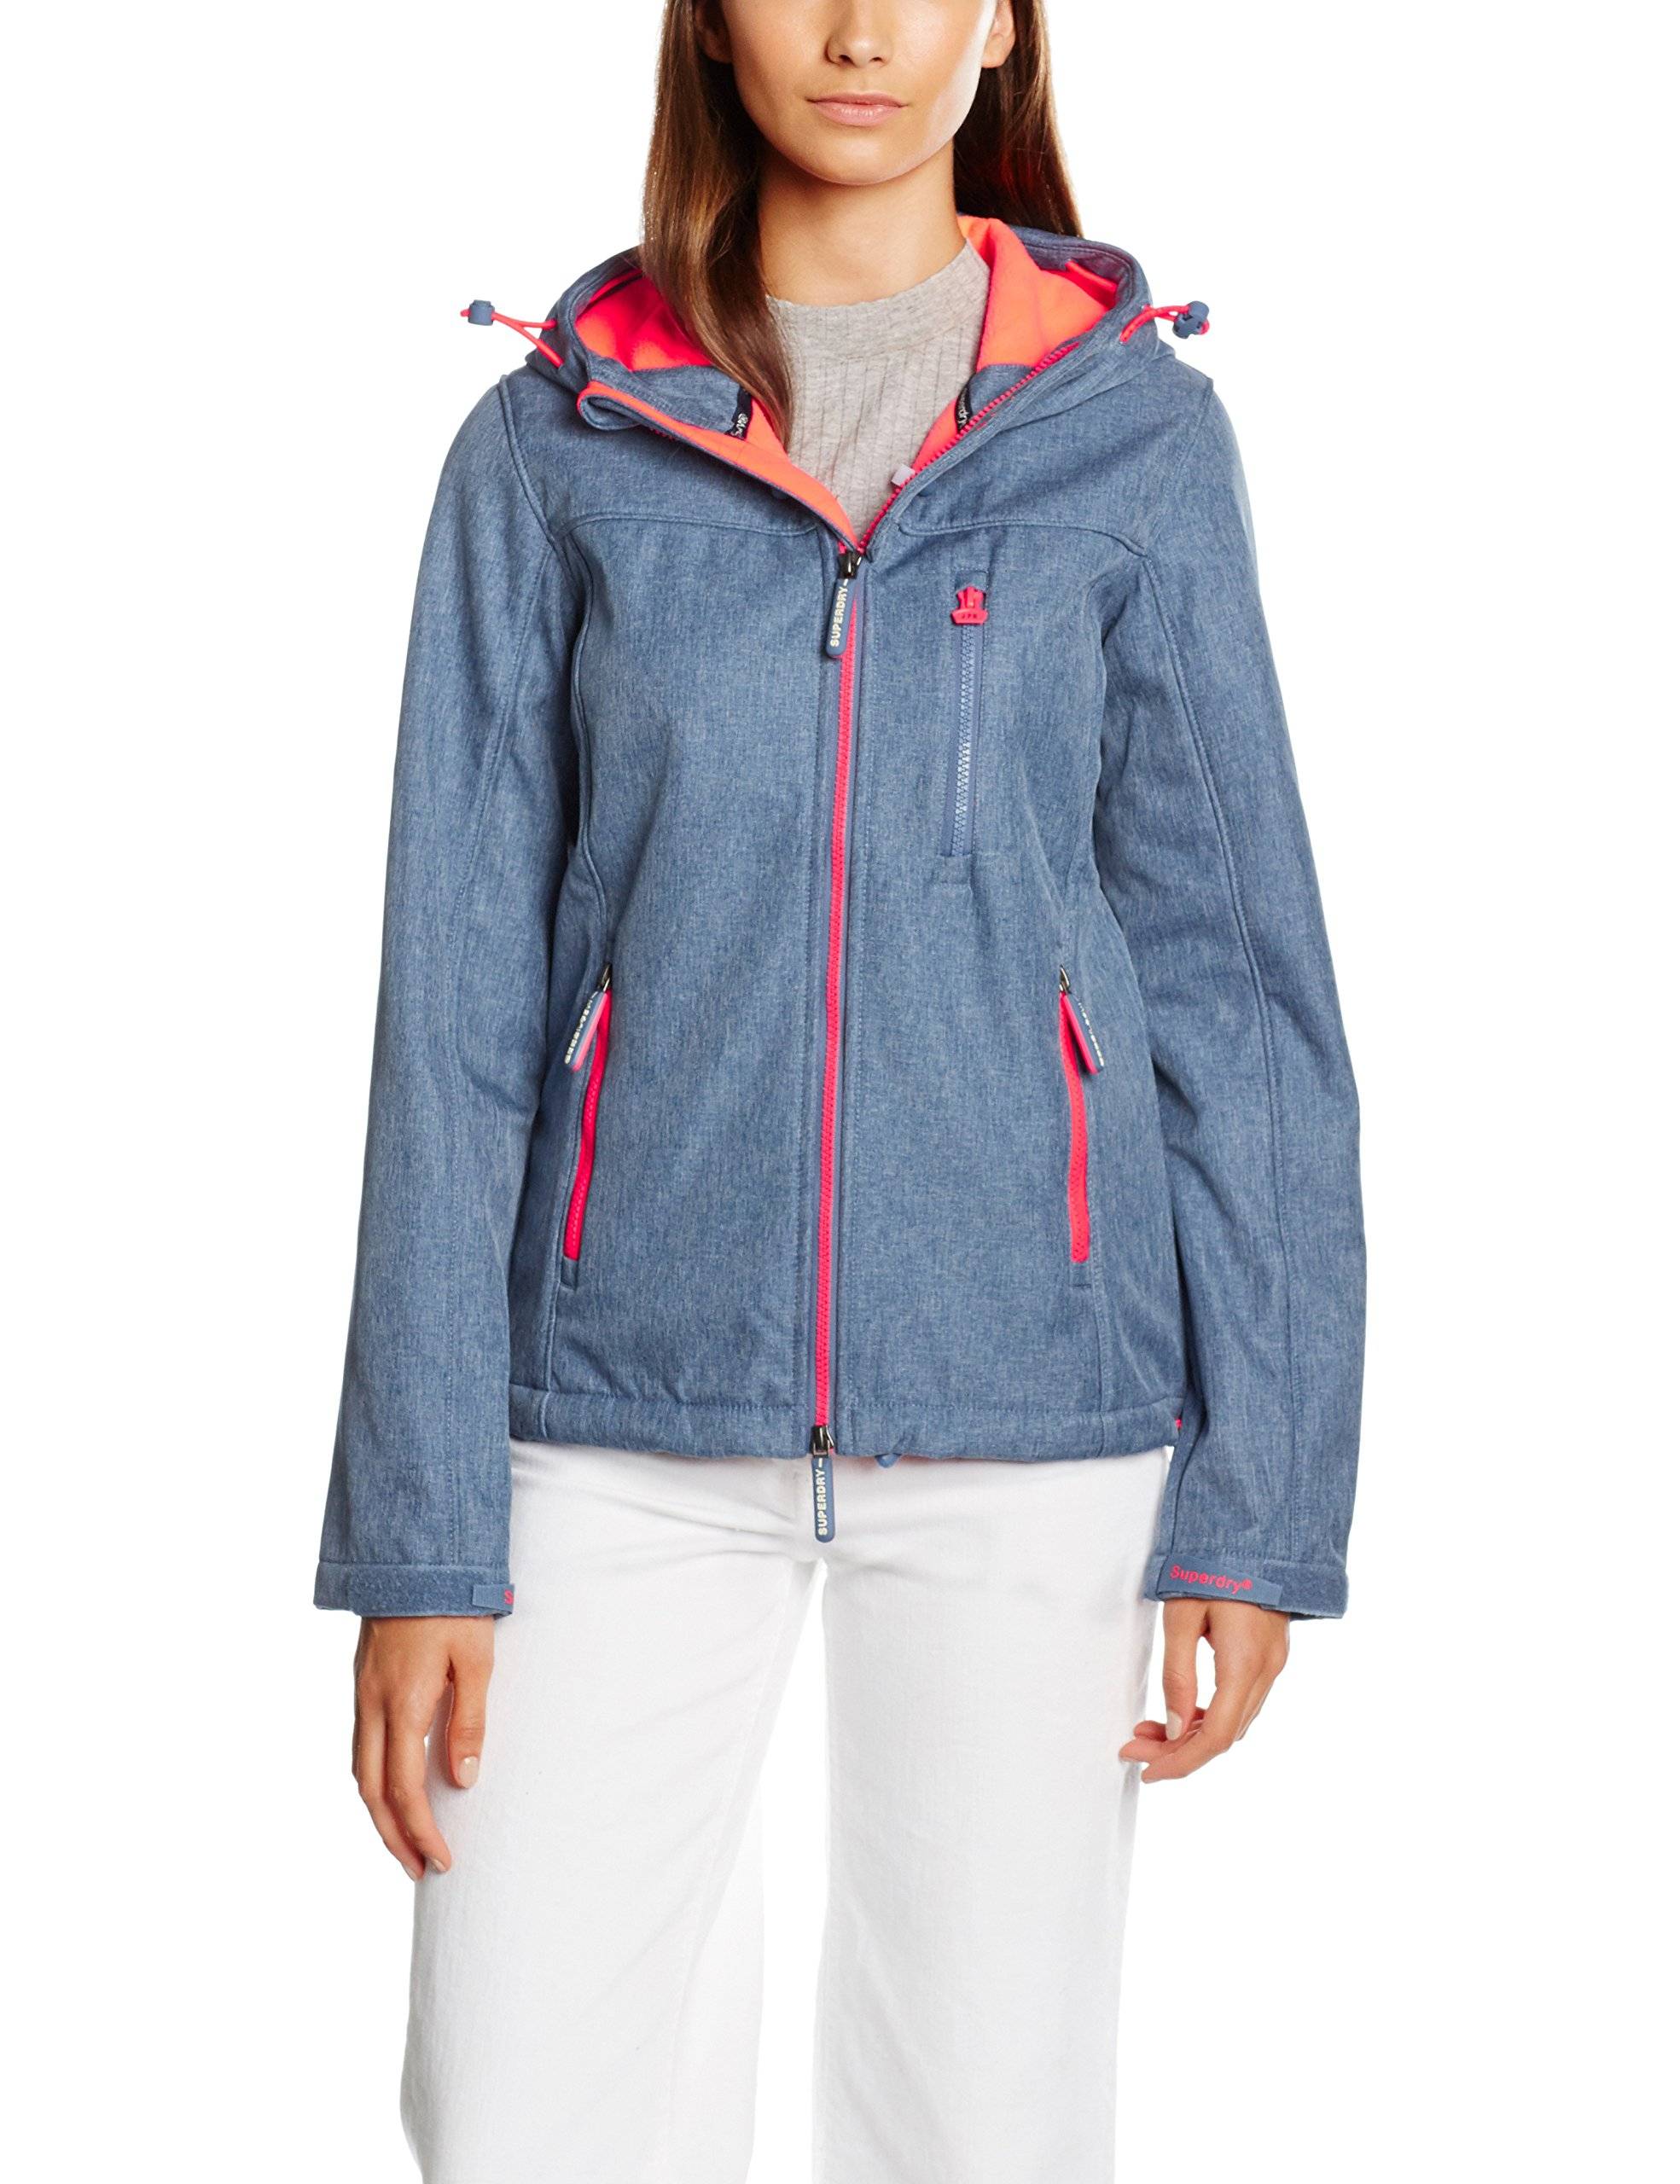 Imperméable Blu Small Marl Veste Superdry Windtrekker Femme Hooded Cherry fluro navy FawBP